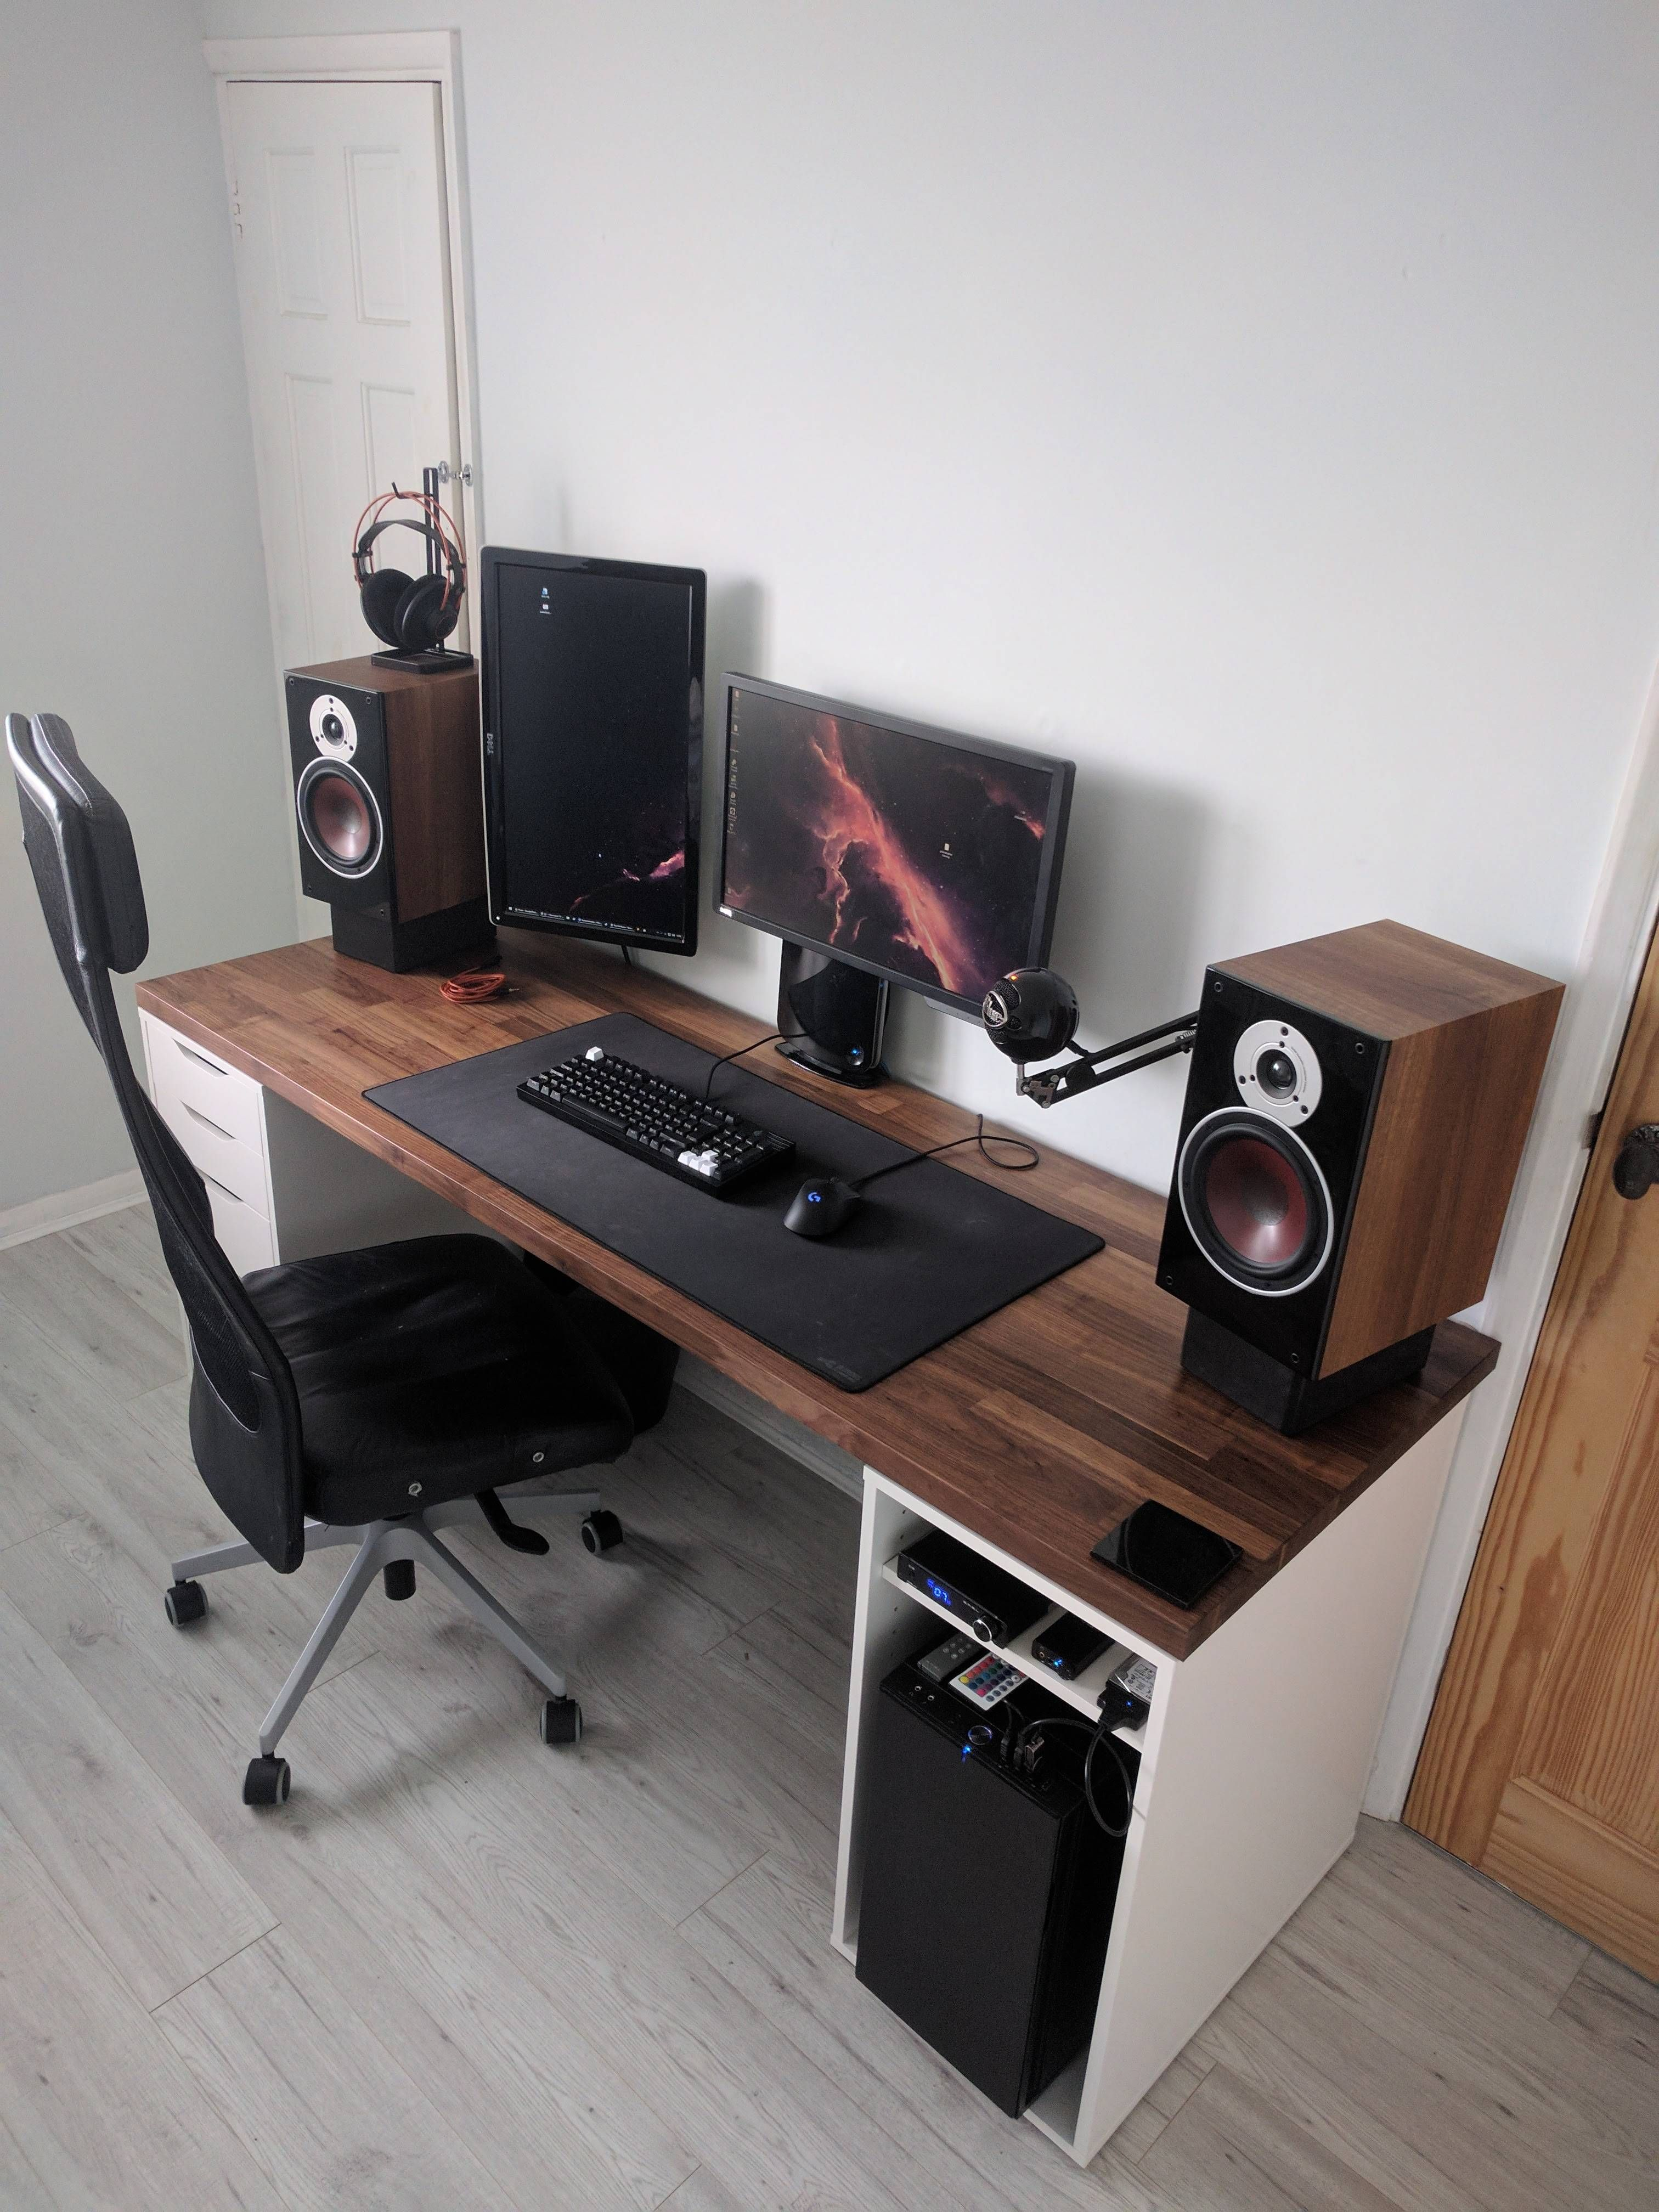 Desk Setup Ideas Got A New Desk Bestgamesetups Pinterest Desks